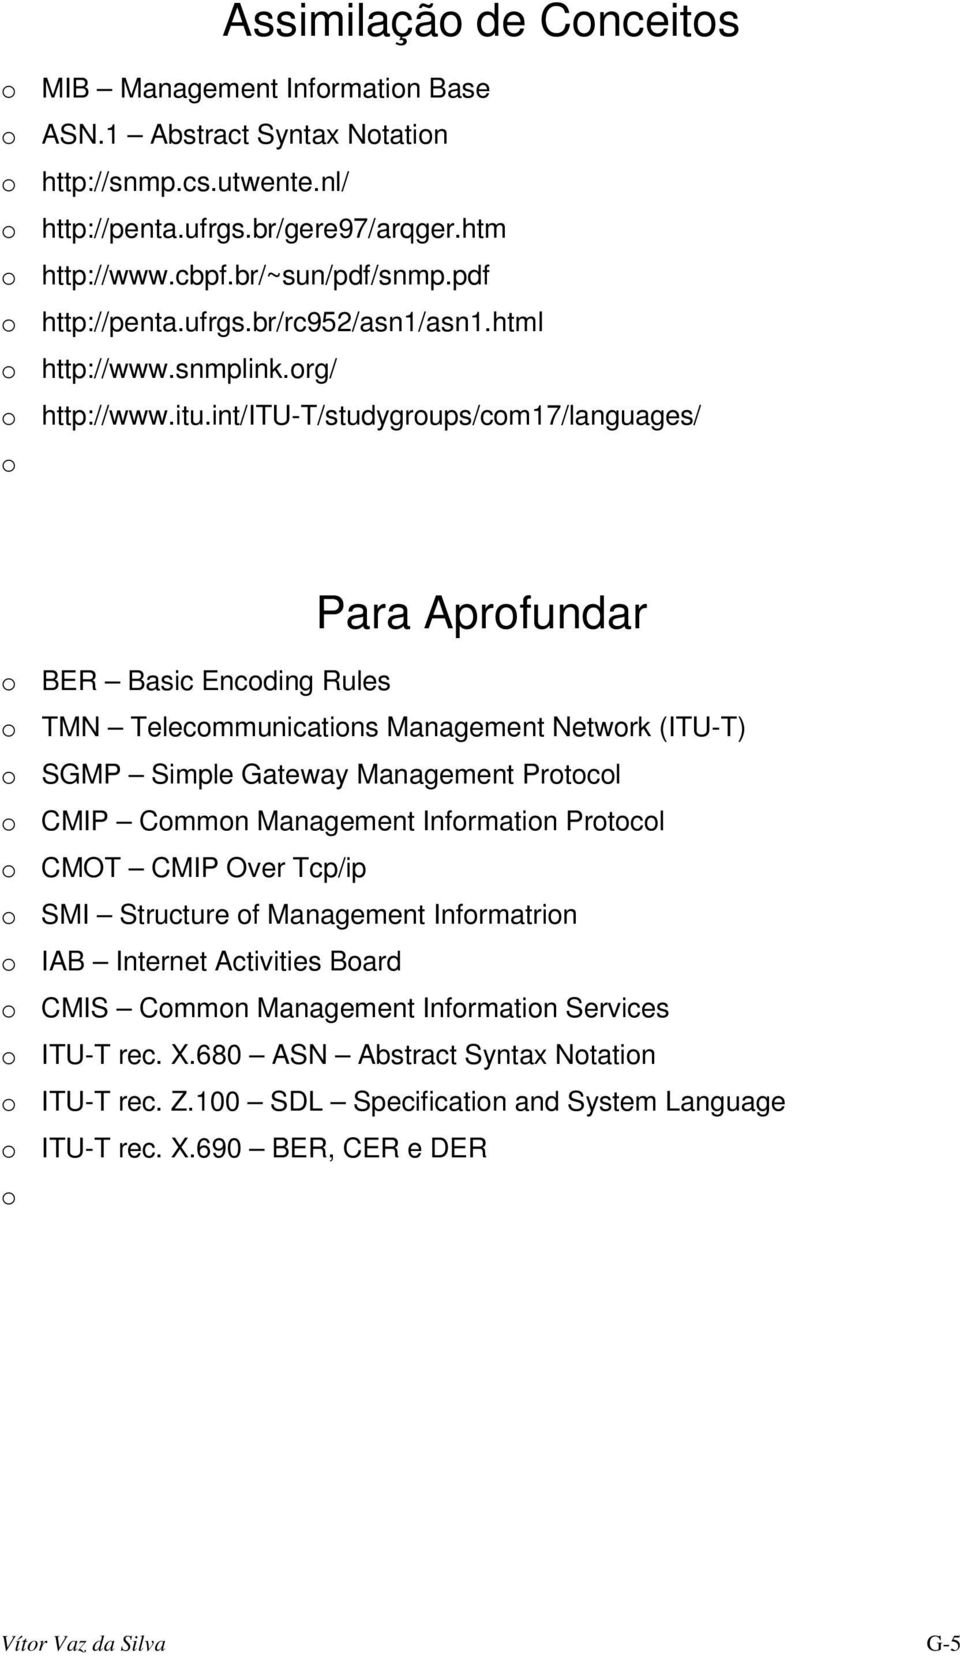 int/itu-t/studygroups/com17/languages/ o Para Aprofundar o BER Basic Encoding Rules o TMN Telecommunications Management Network (ITU-T) o SGMP Simple Gateway Management Protocol o CMIP Common